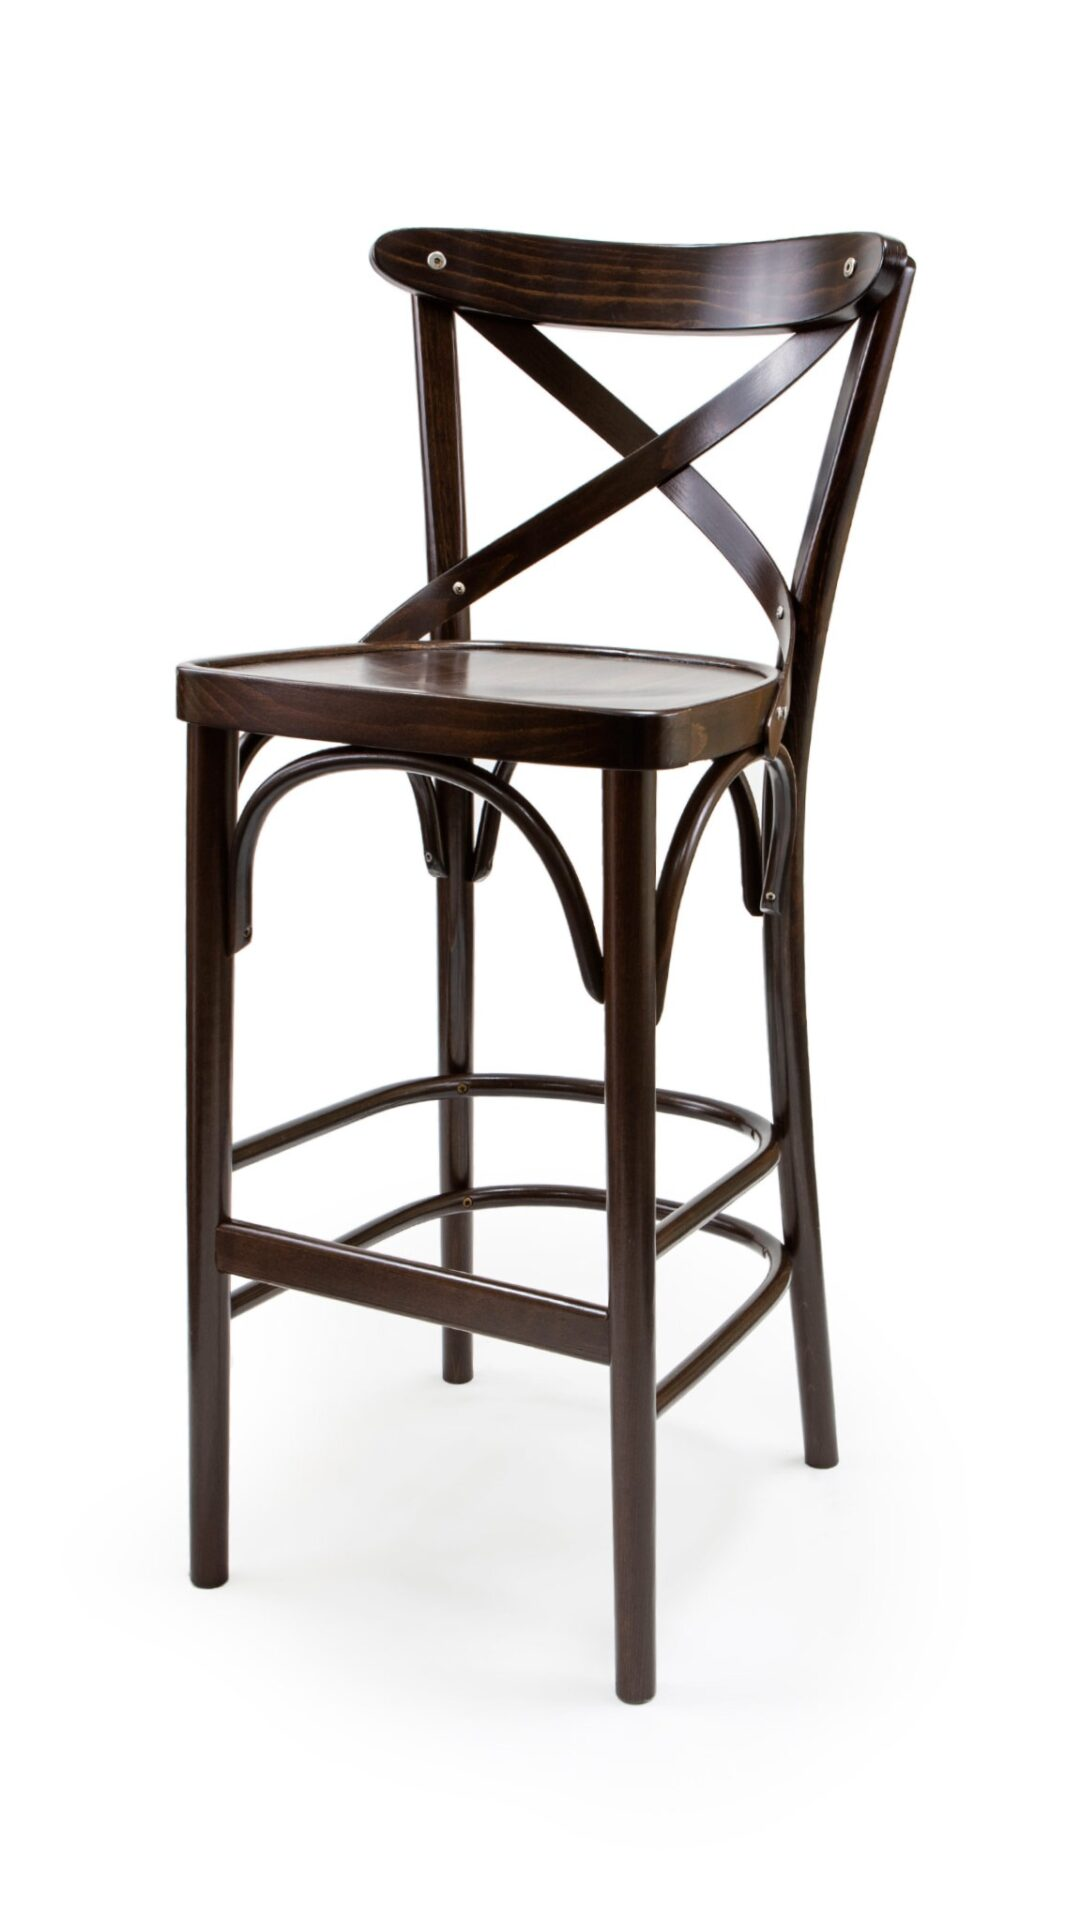 Solid Wood barstool made of Beech - 1327B, BP